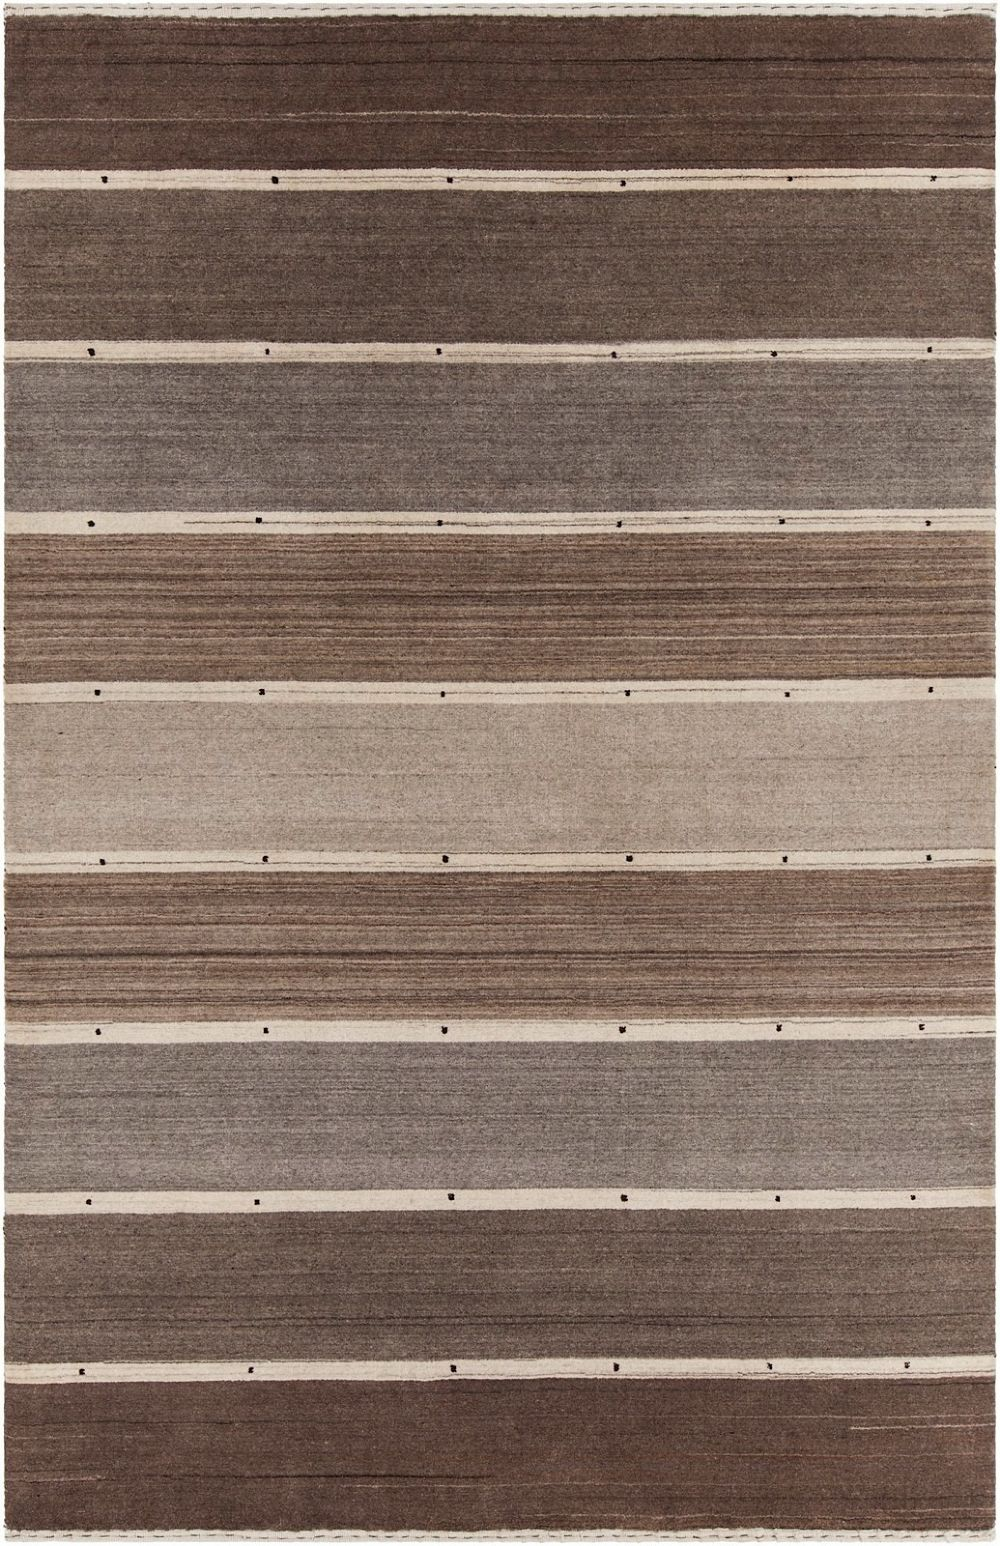 chandra elantra solid/striped area rug collection